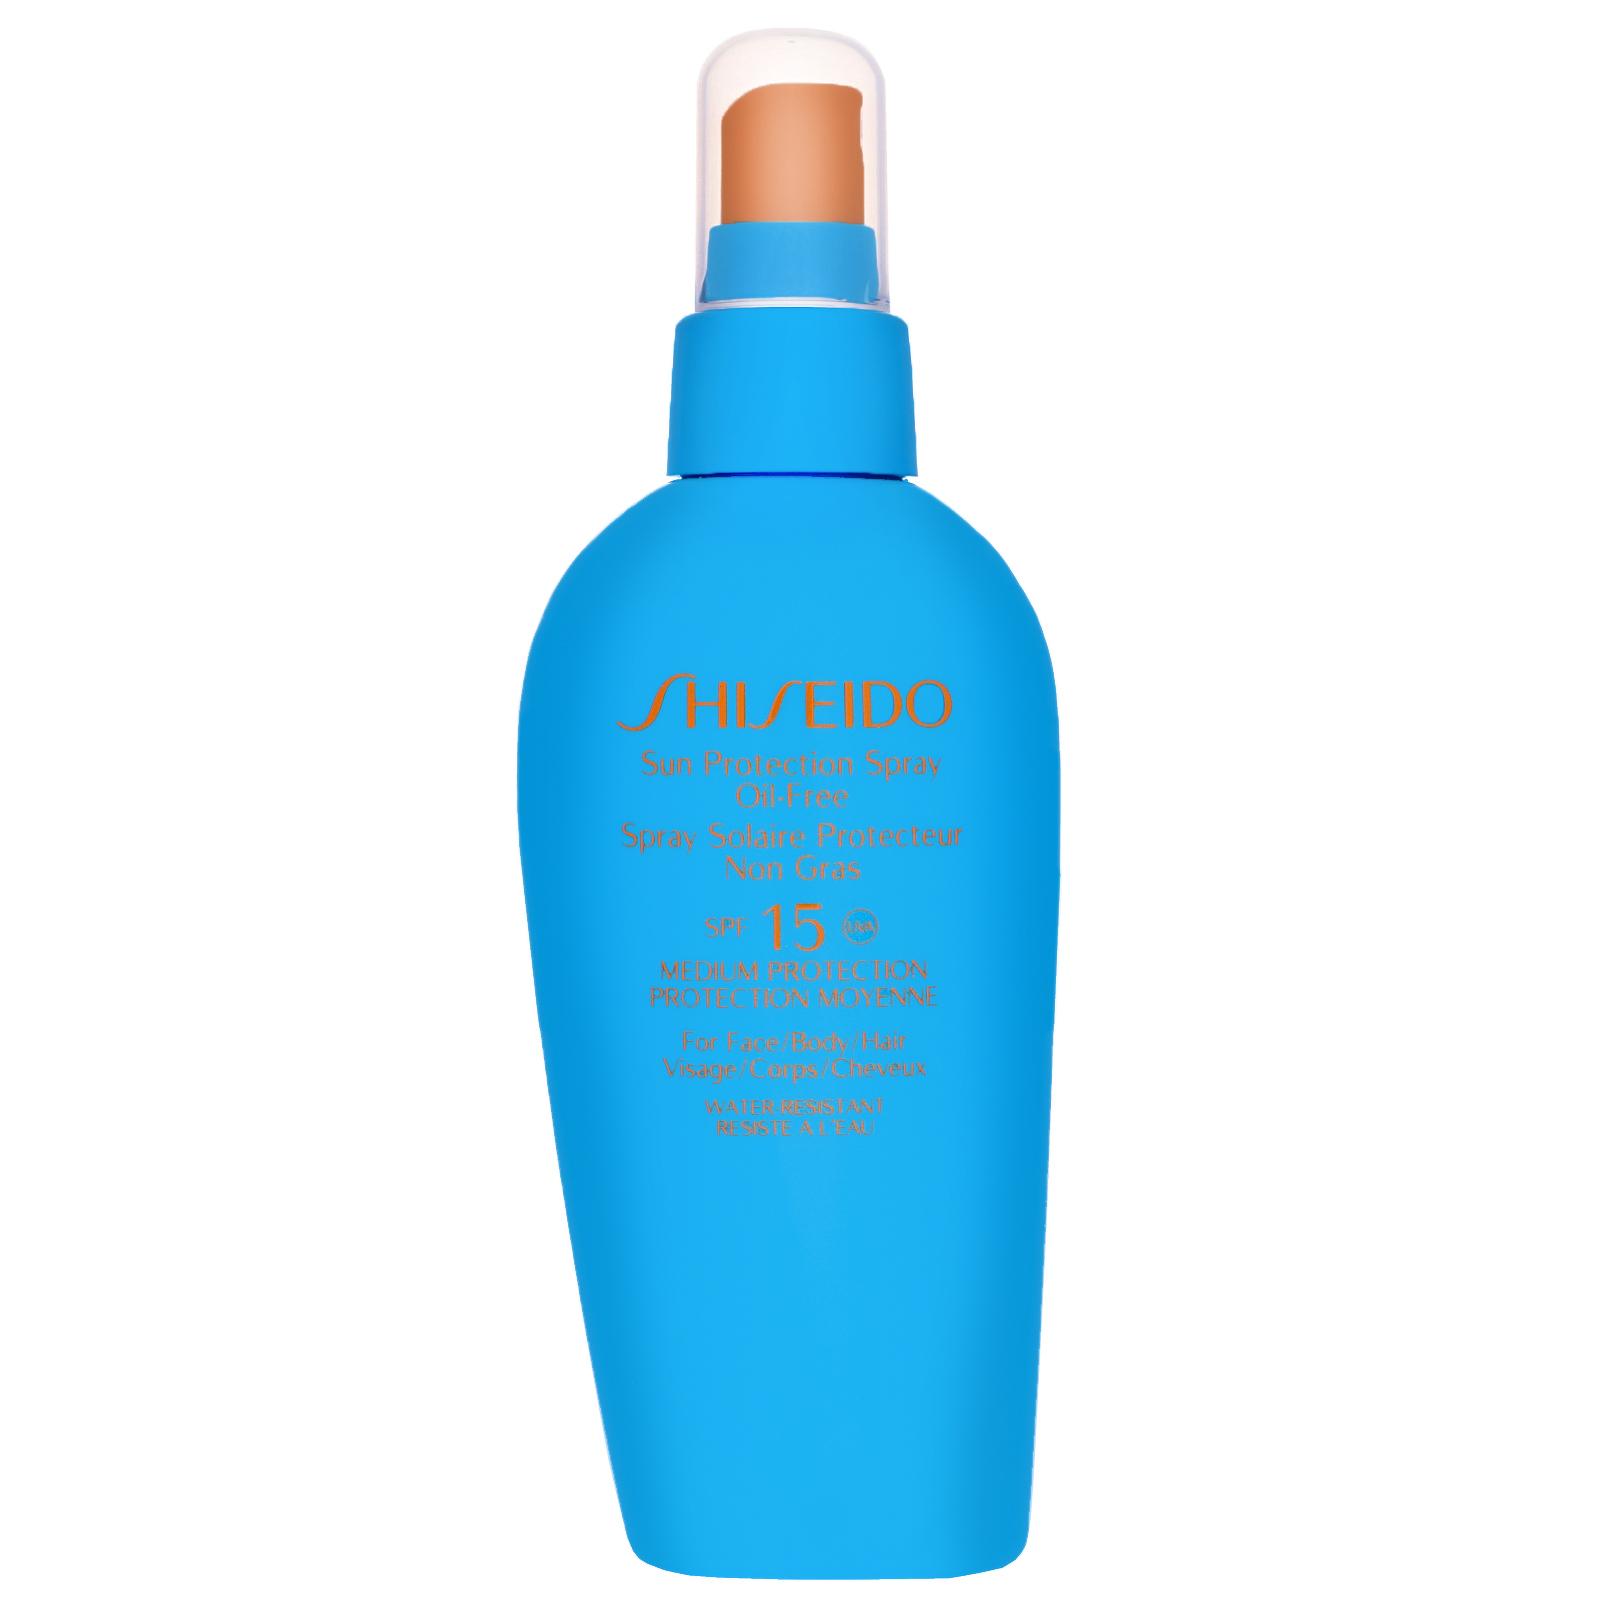 Shiseido Protection Sun Protection Spray Oil-Free SPF15 For Face & Body 150ml / 5 fl.oz.